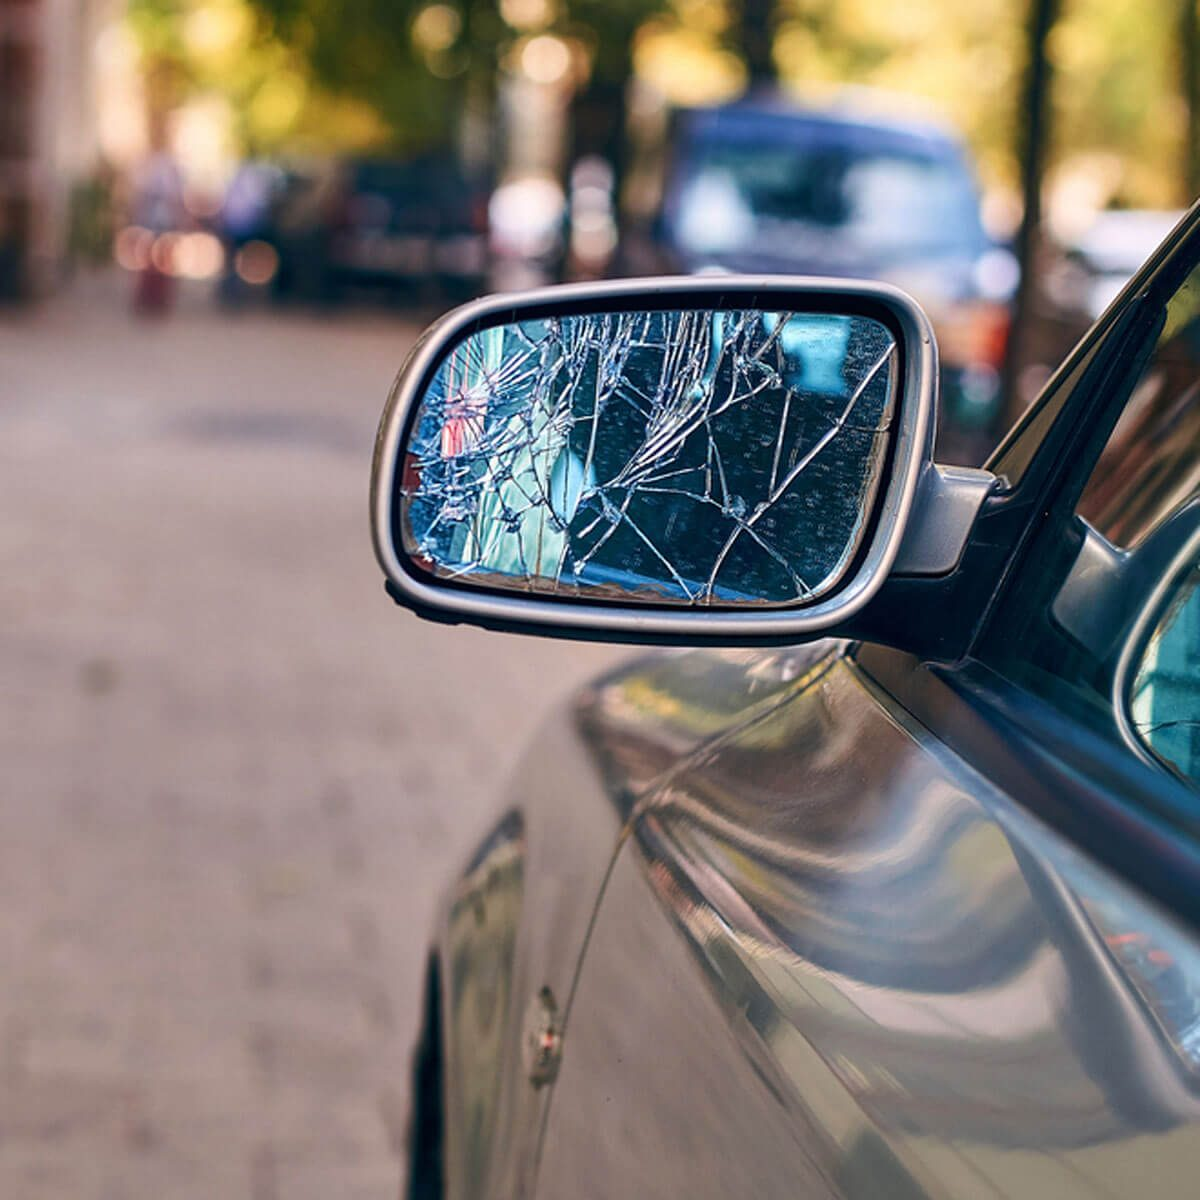 dfh11_shutterstock_487815760 car broken mirror